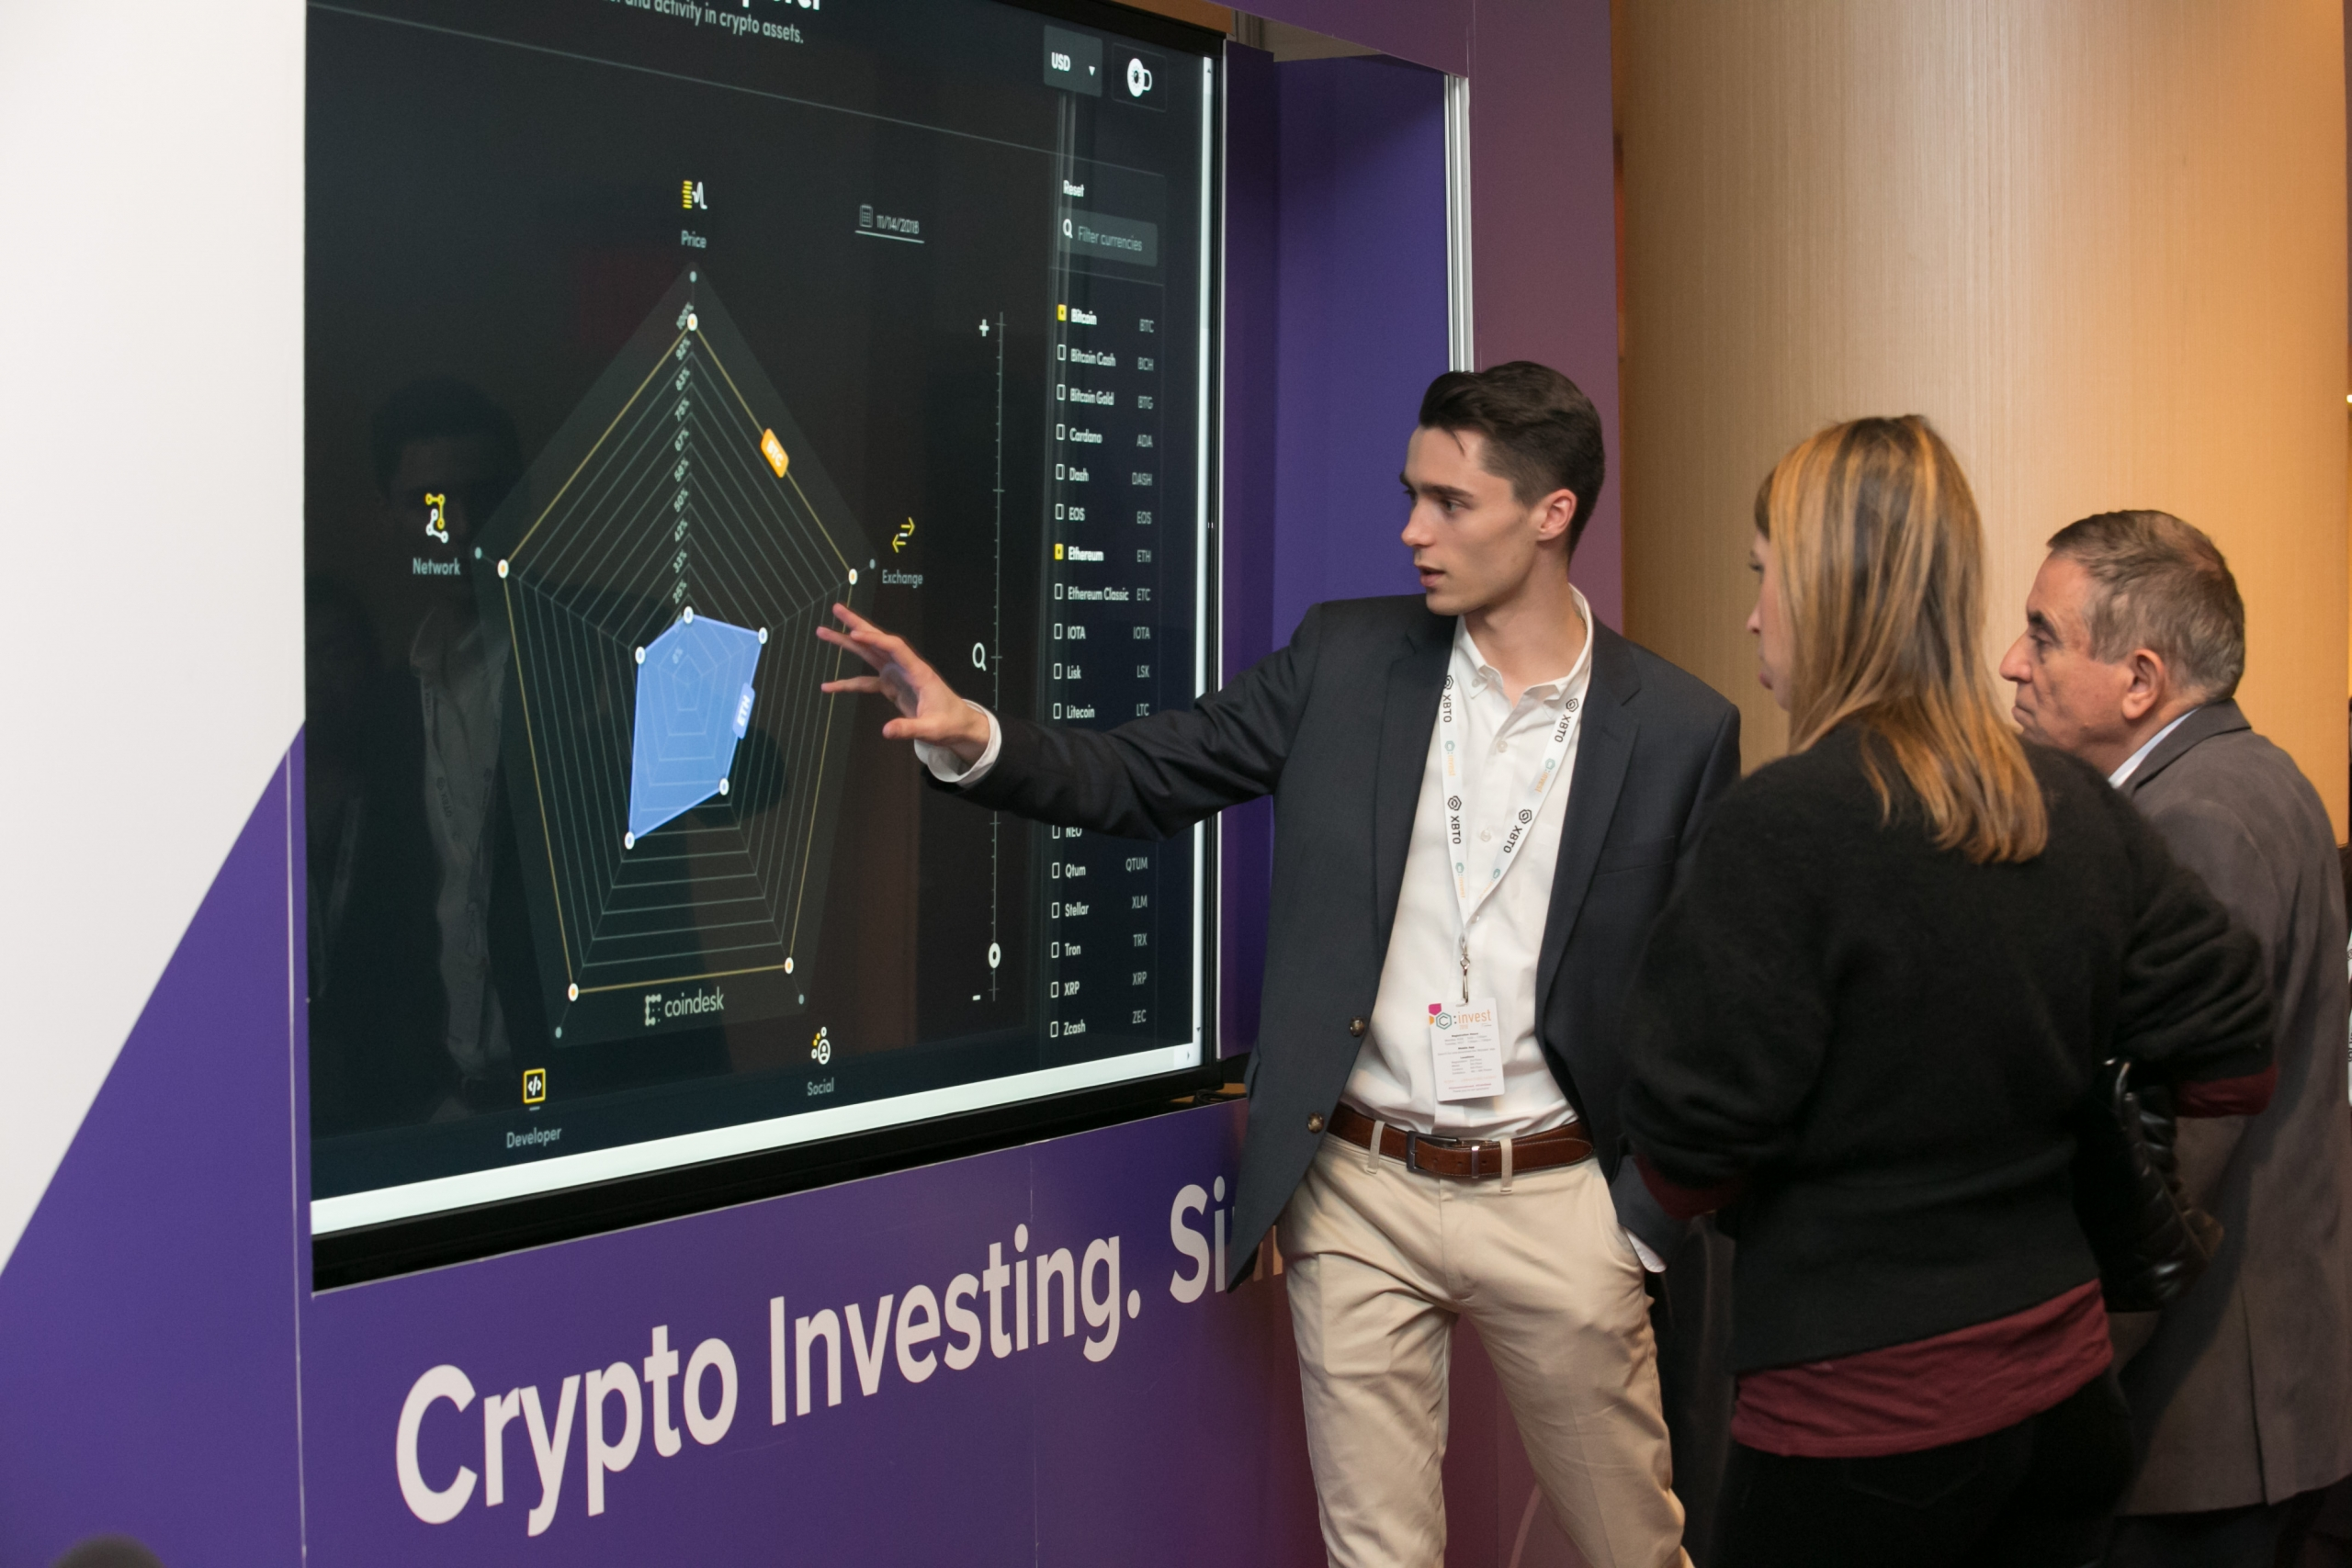 cryptocurrency where will institutional money go